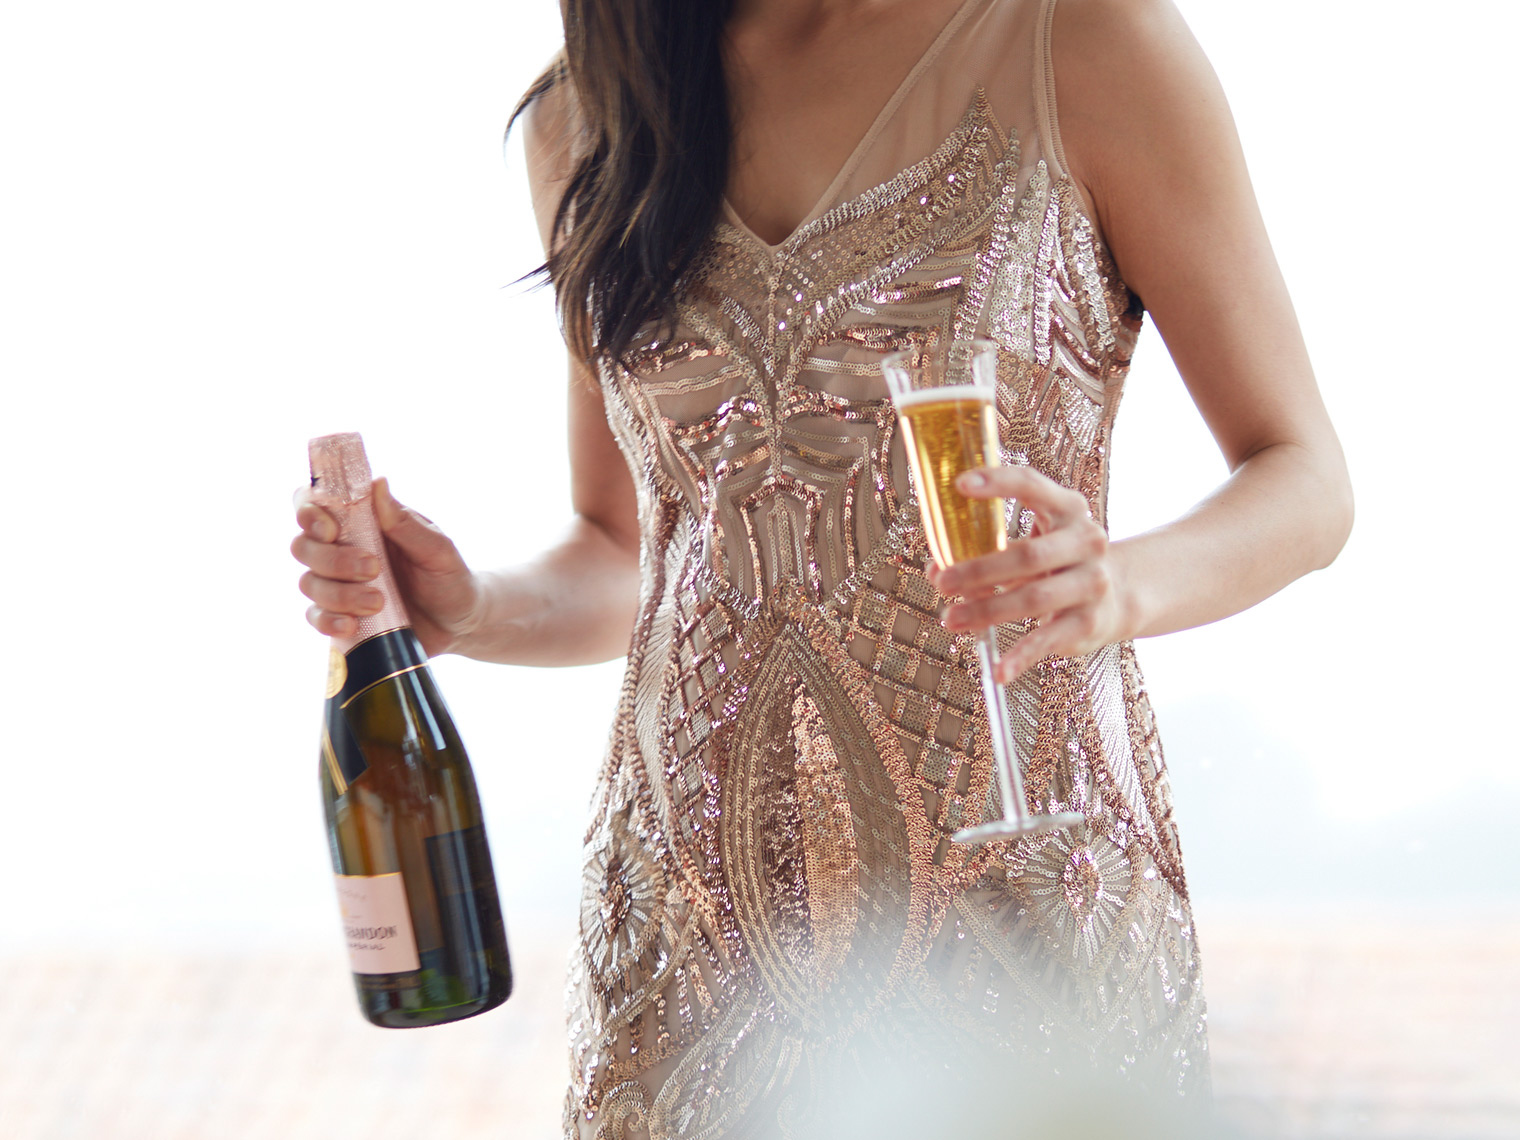 woman in sequin gown holding a bottle and glass of champagne